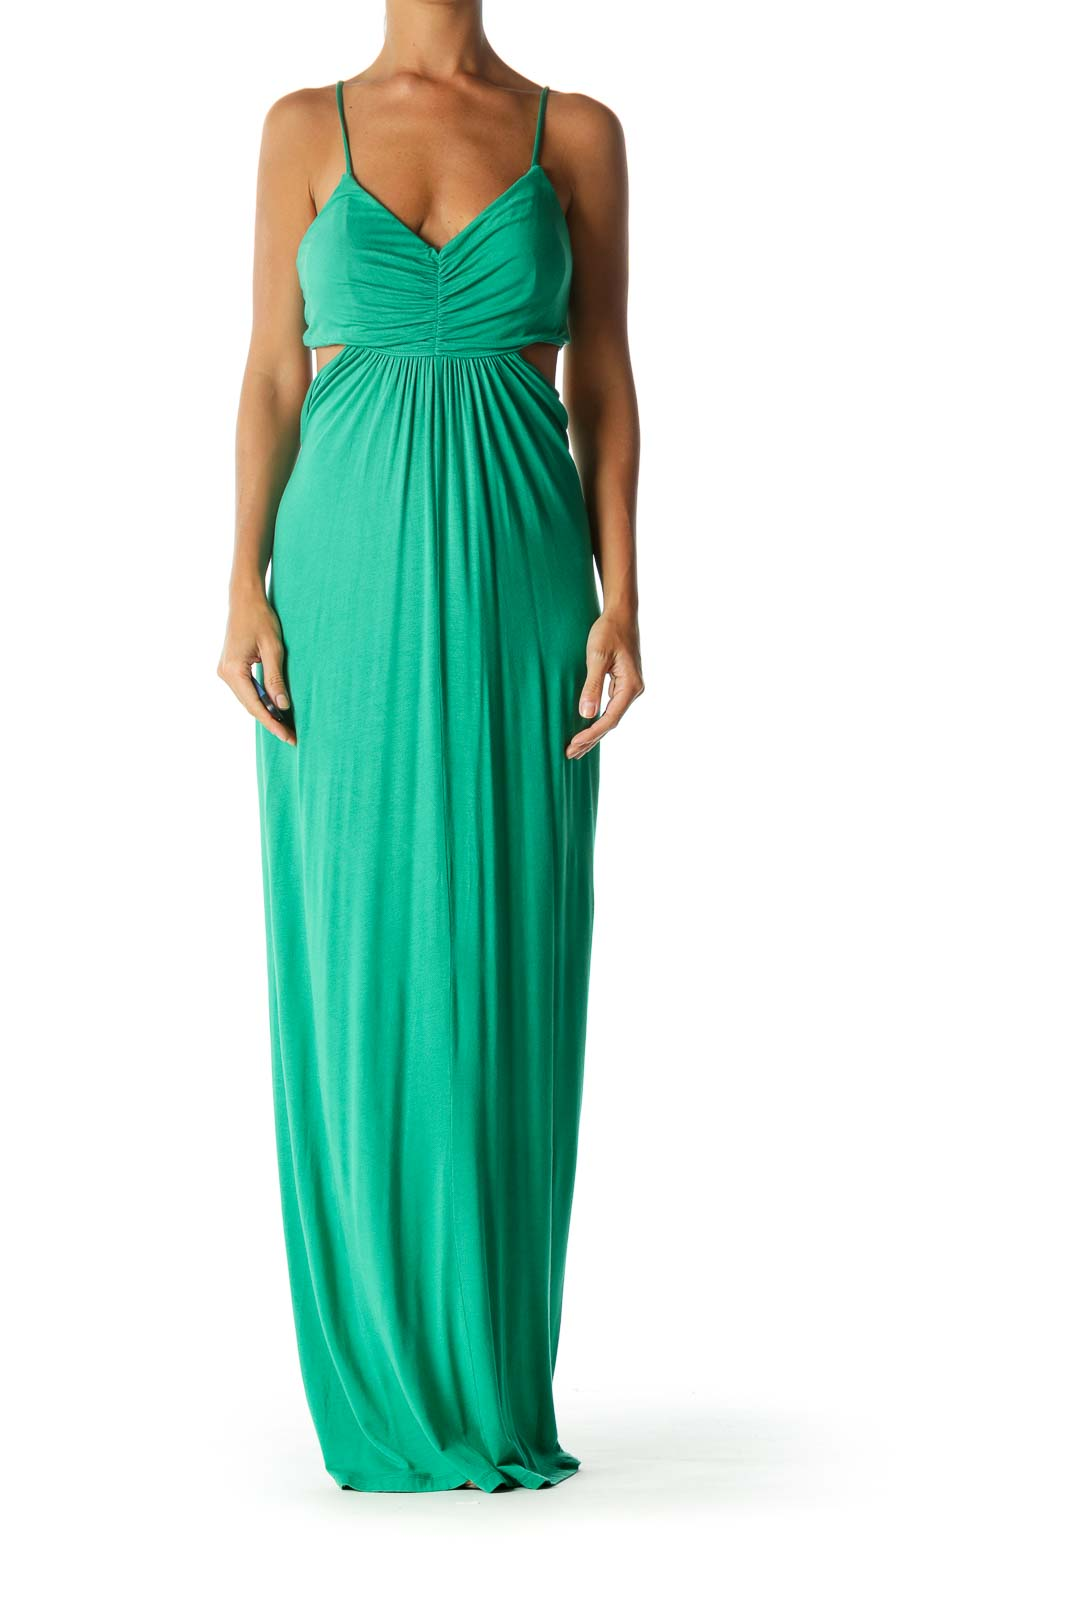 Green V-Neck Cut-Out Ruched Bust Detail Stretch Maxi Dress Front